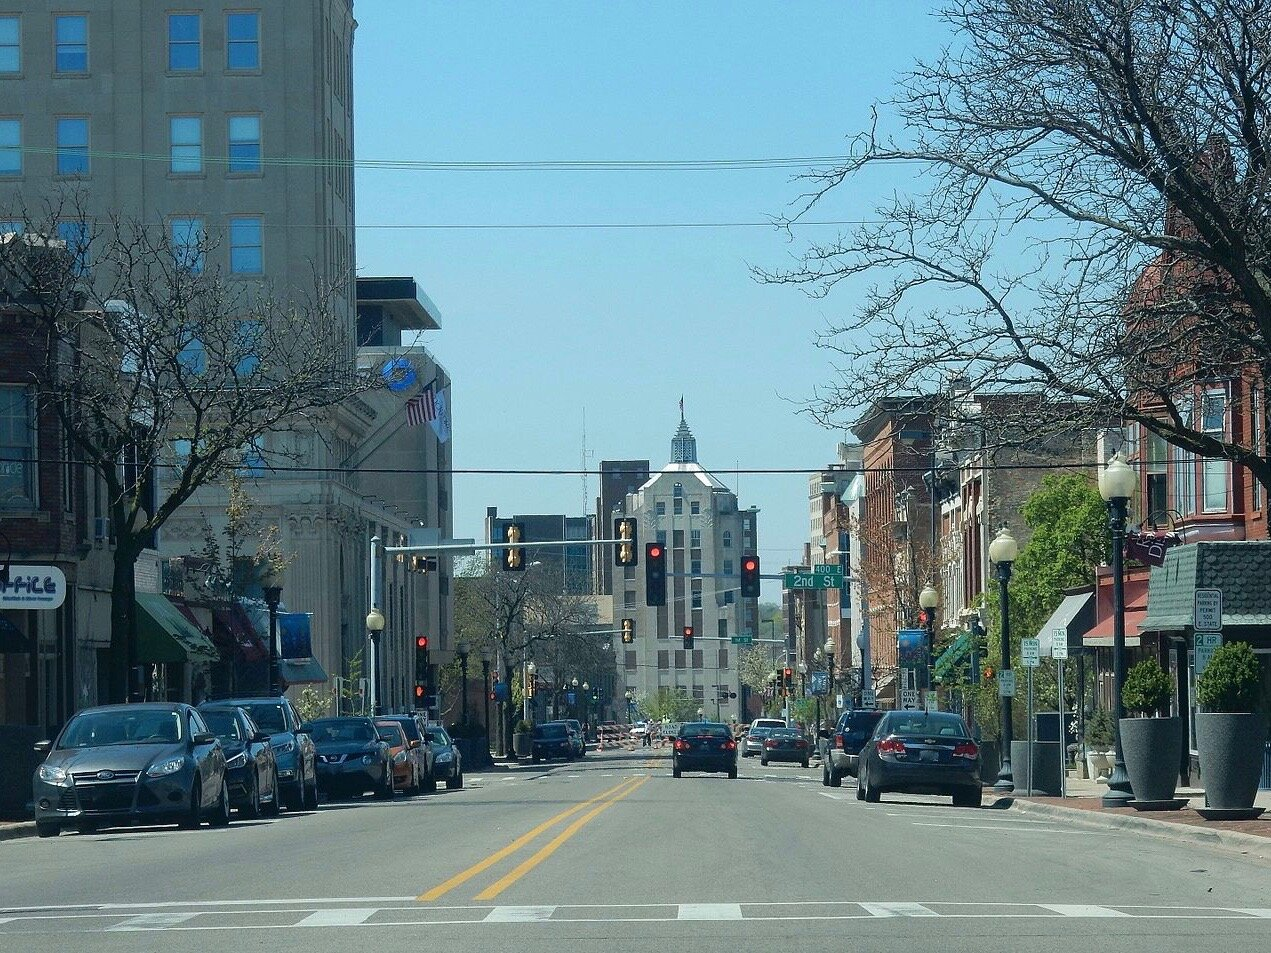 Rockford, seen here looking downtown from East State Street, had the highest rate of residents with broadband, at 87.5 percent. (Wikimedia Commons/Alex Baumgarner)